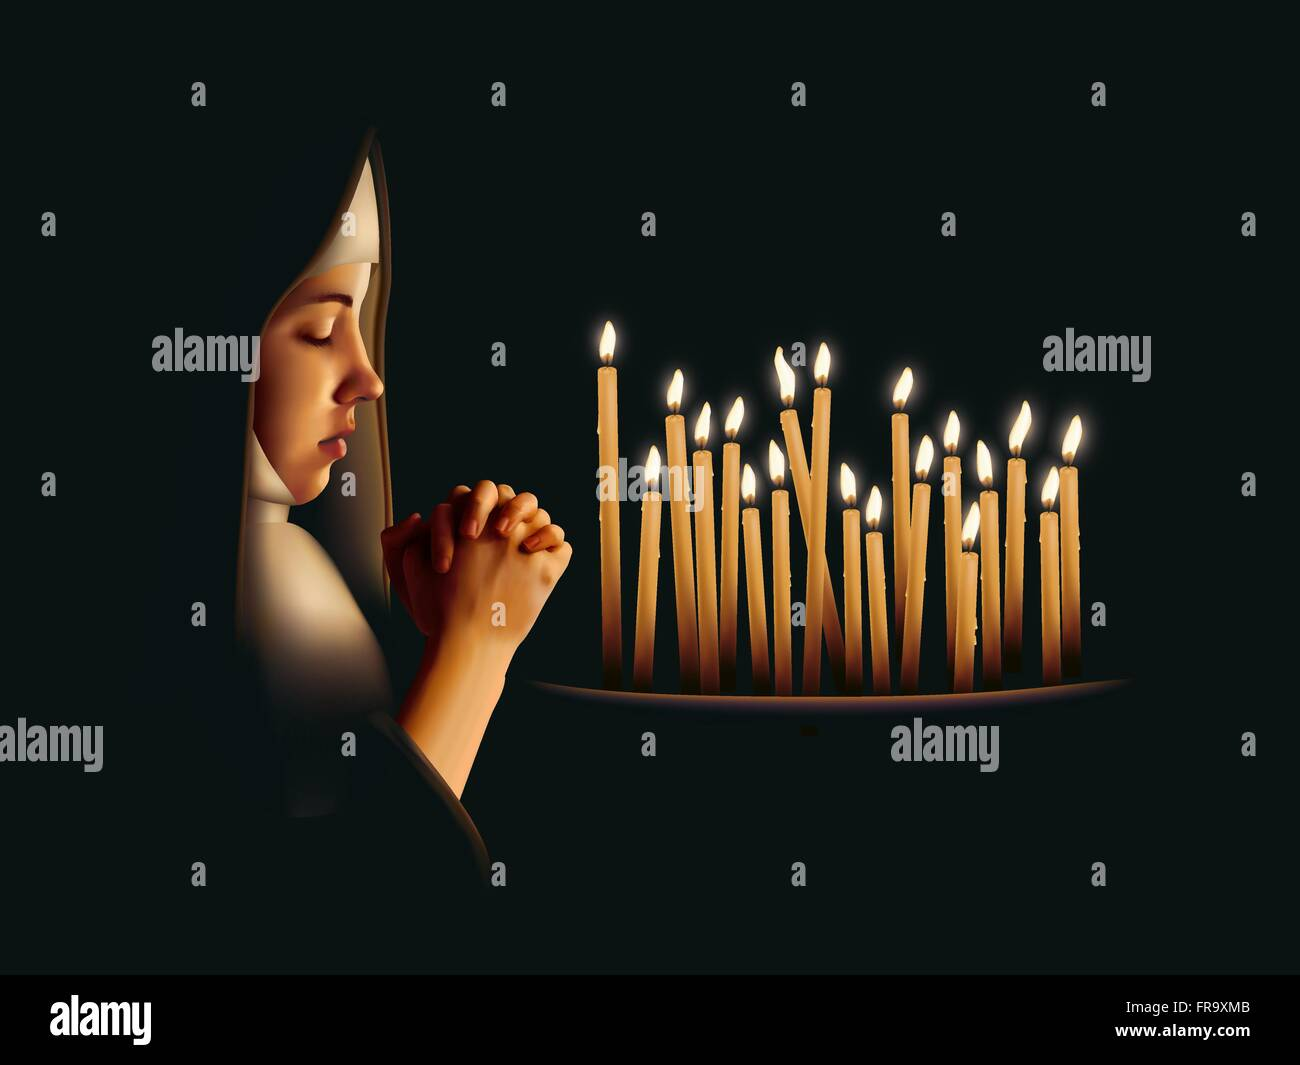 A nun praying beside lit candles - Stock Vector